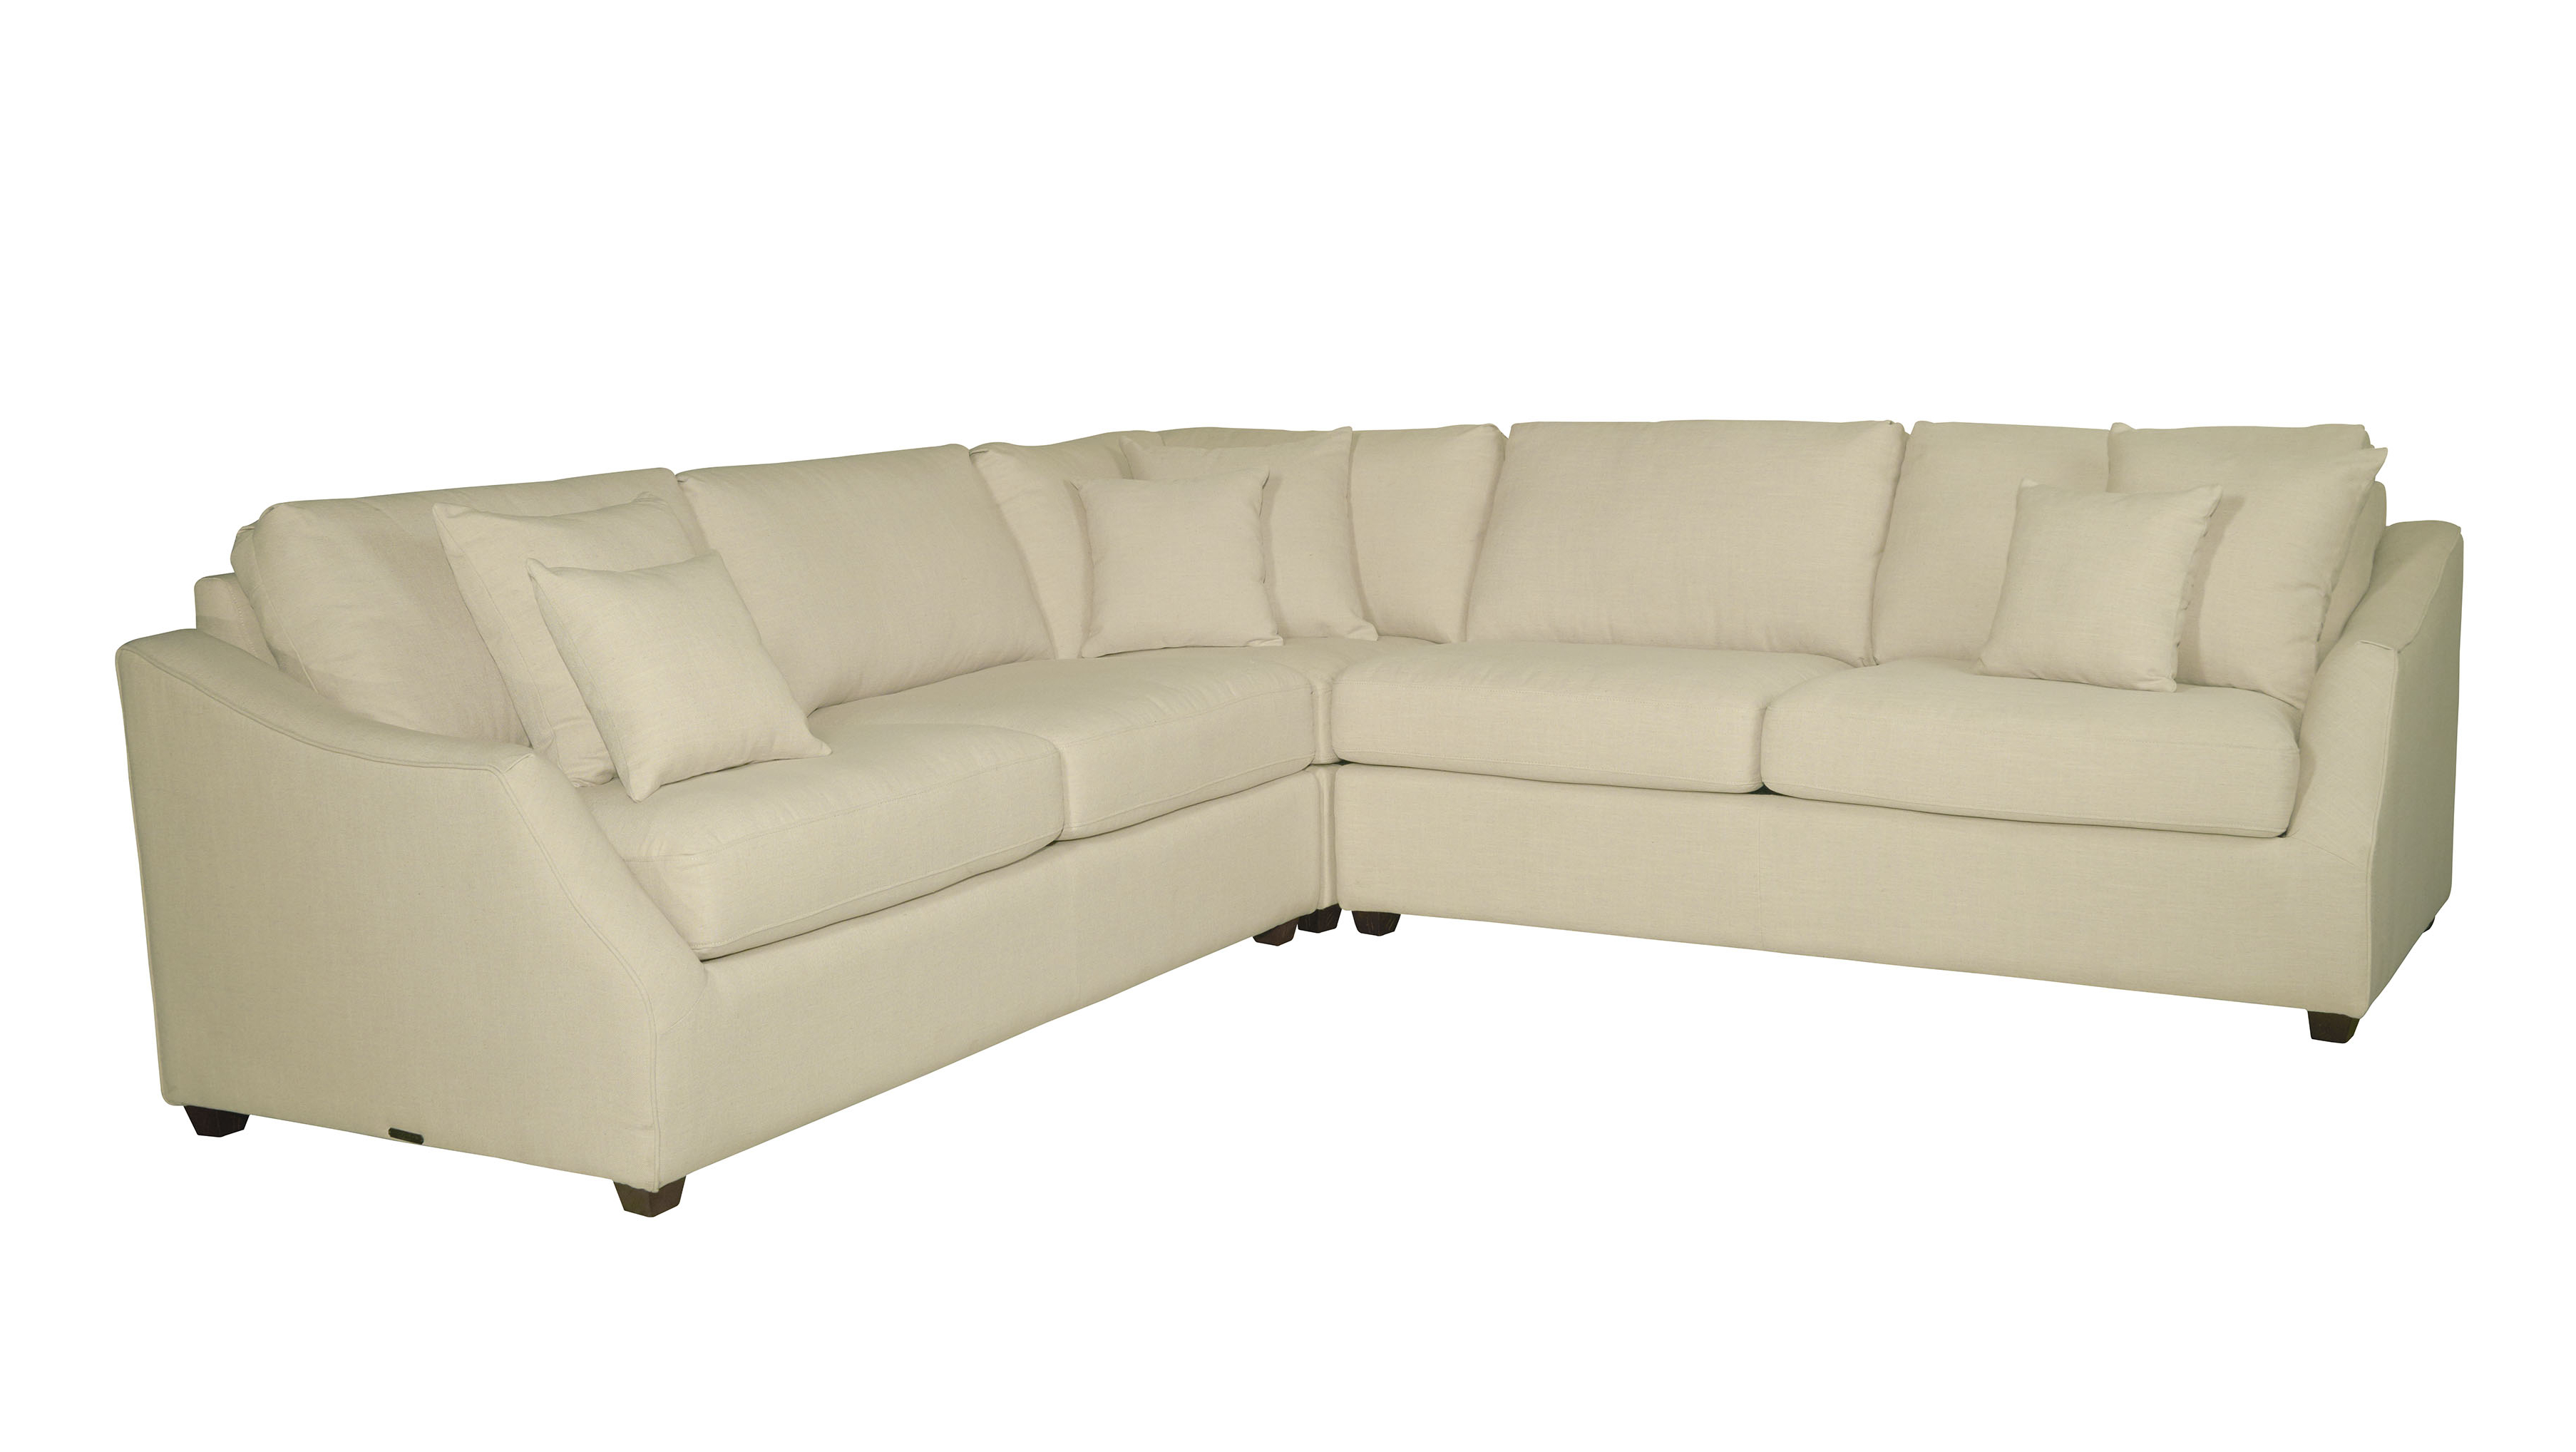 Magnolia Home Homestead 4 Piece Sectionals By Joanna Gaines Inside Best And Newest Homestead Sectional – Magnolia Home (View 3 of 20)